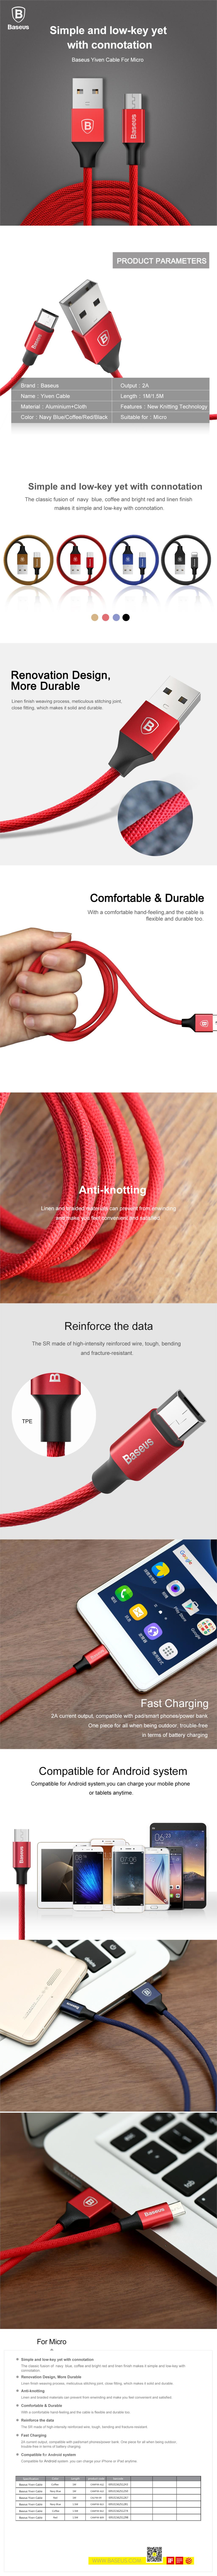 Baseus Micro USB Cable 2A Fast Data Sync Charging Microusb Charger For Samsung Huawei Xiaomi HTC LG Android Mobile Phone Cables 11